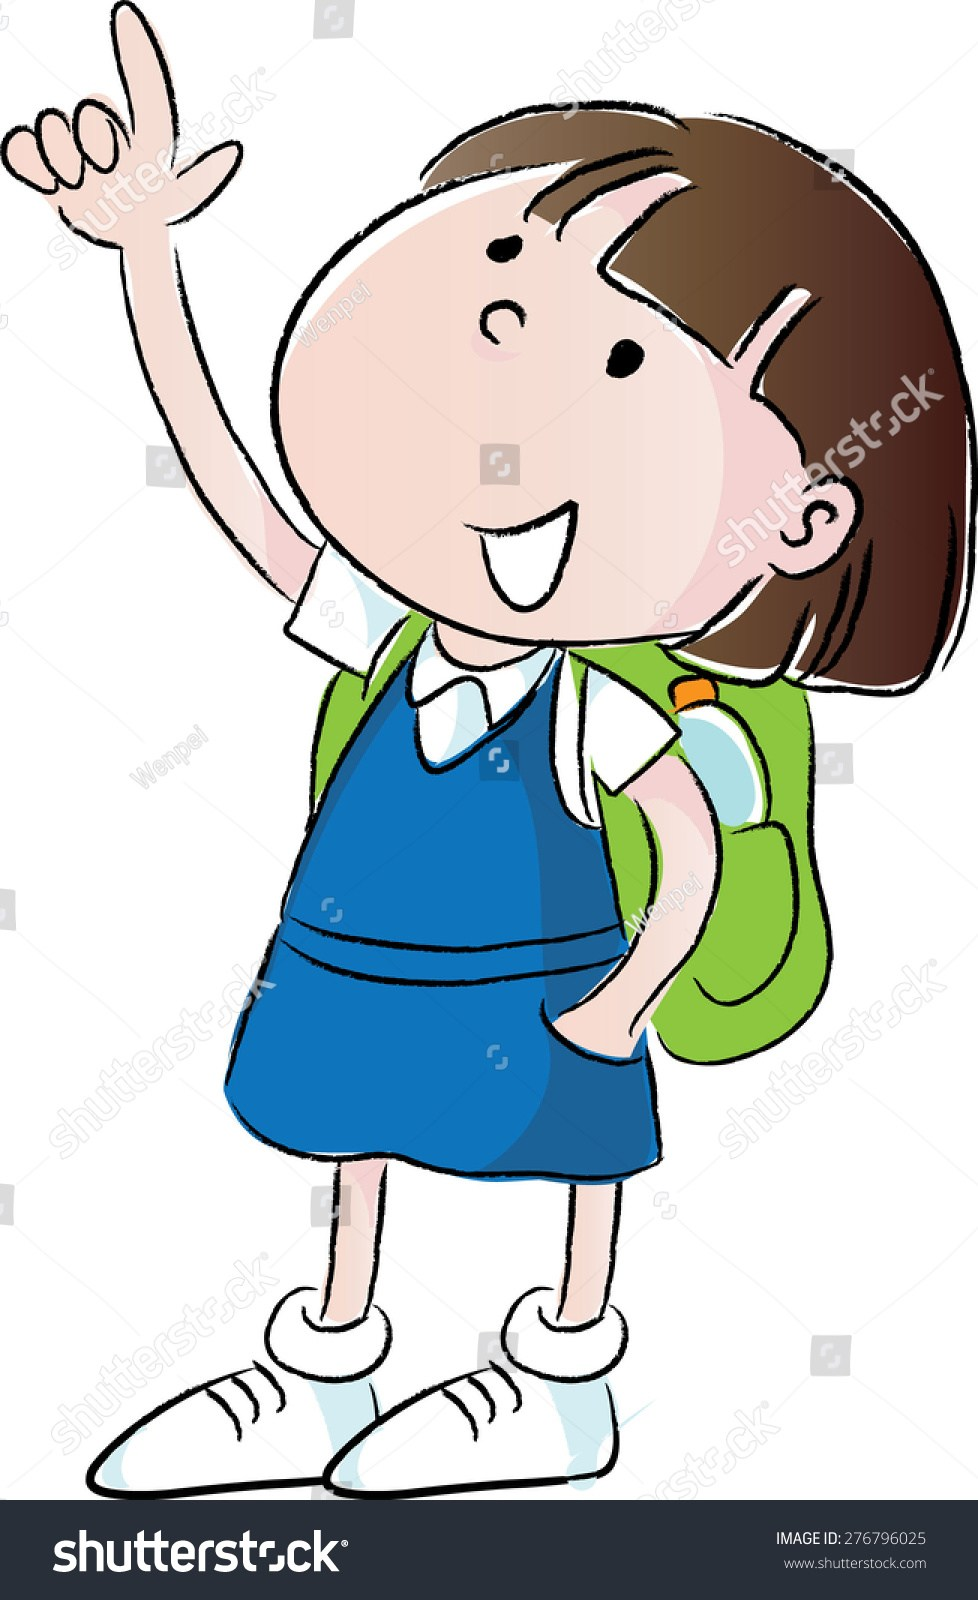 Child pointing up clipart 3 » Clipart Portal.